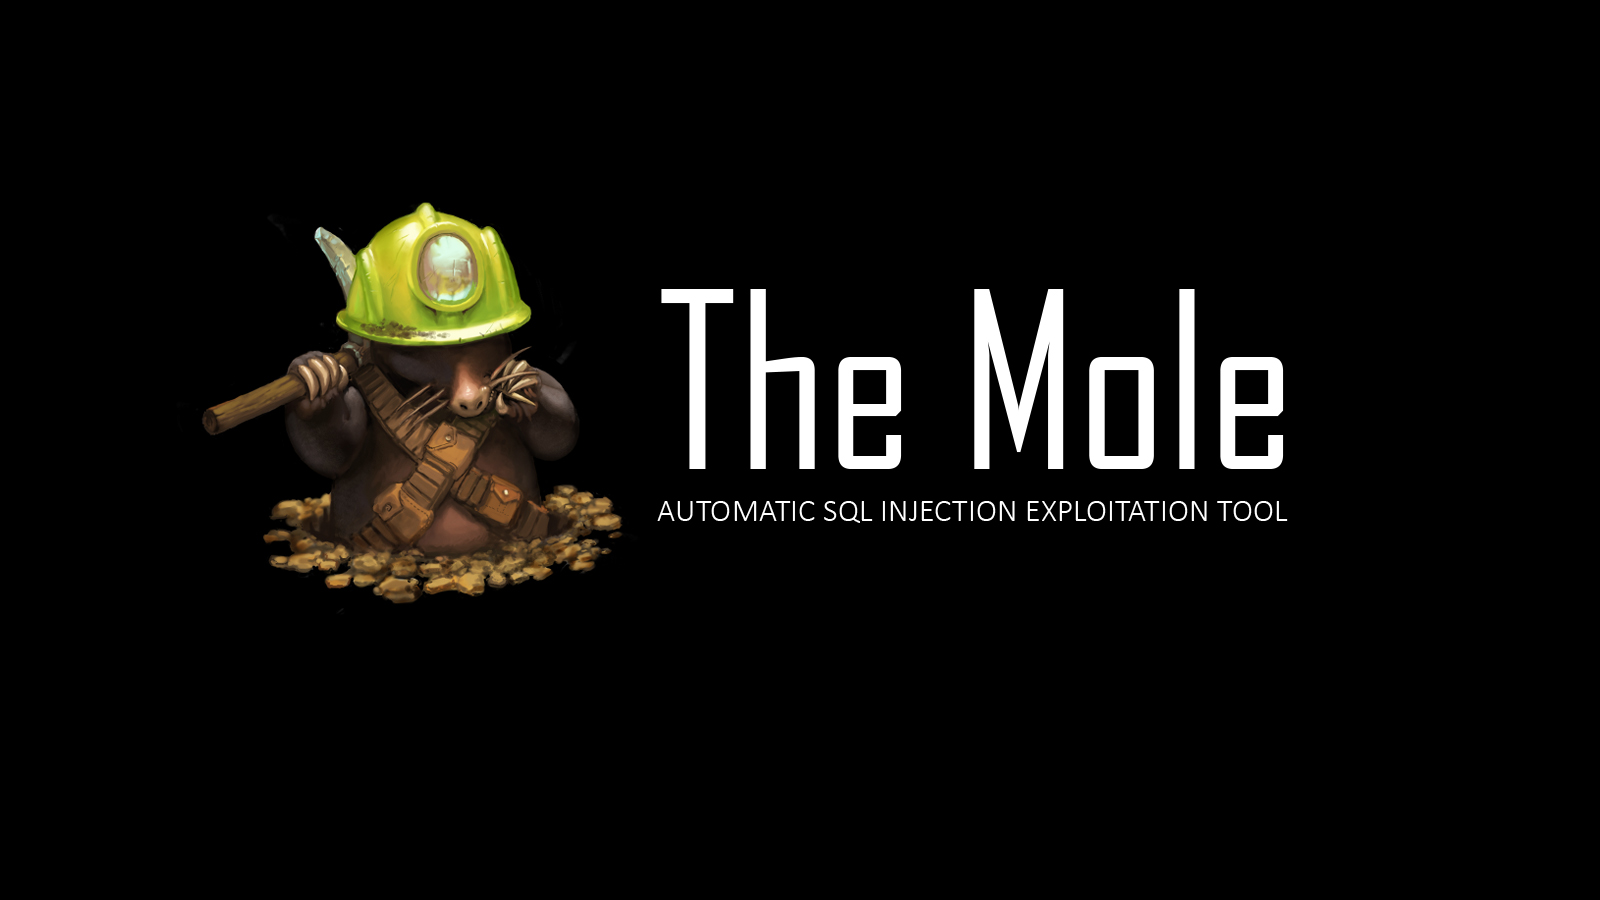 The Mole - Automatic SQL Injection Exploitation Tool